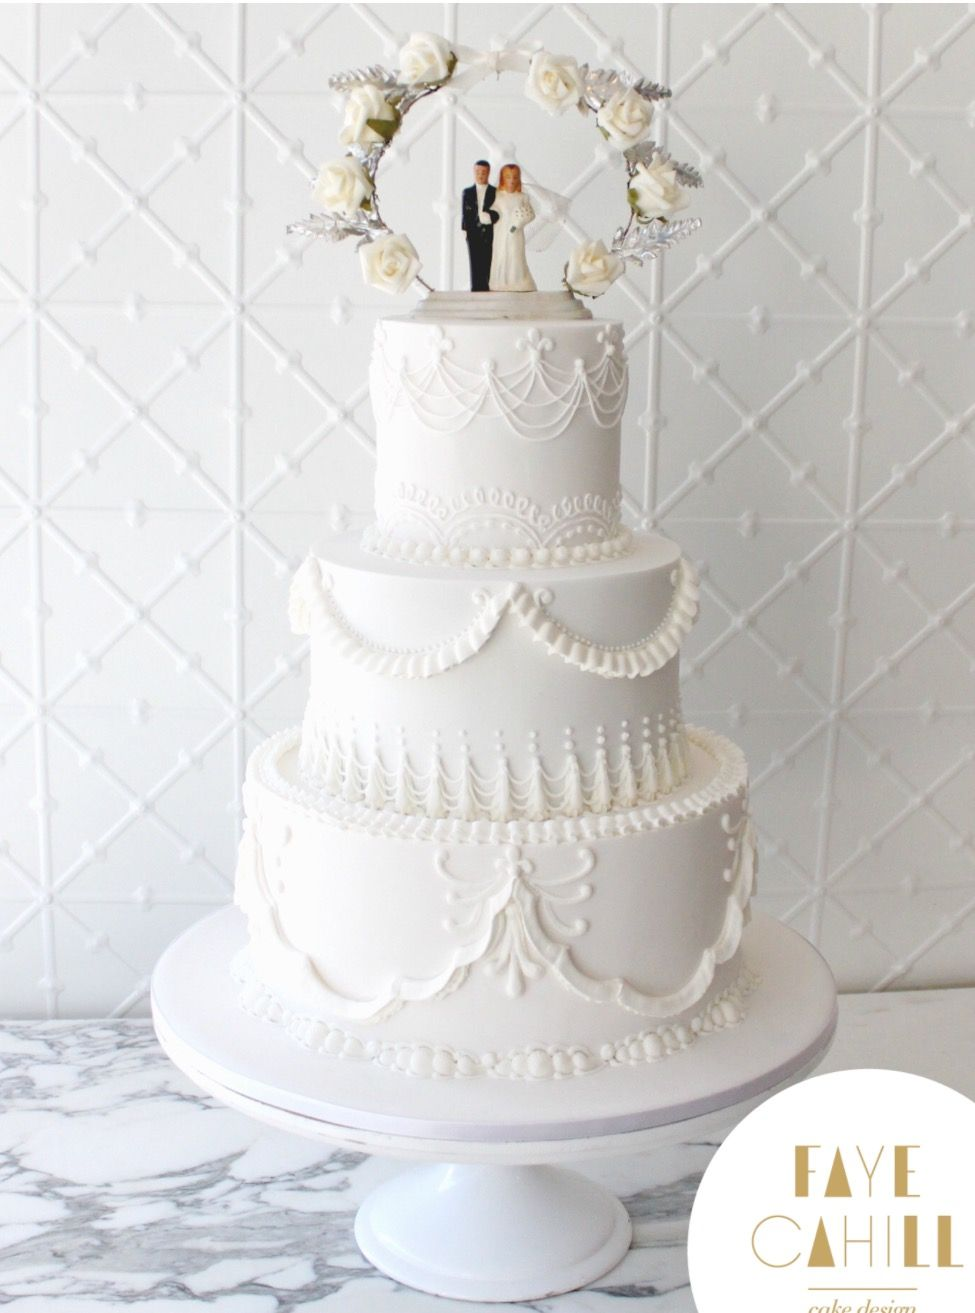 Pin by Cheri Quinto on Cakes | Pinterest | Wedding cake and Cake